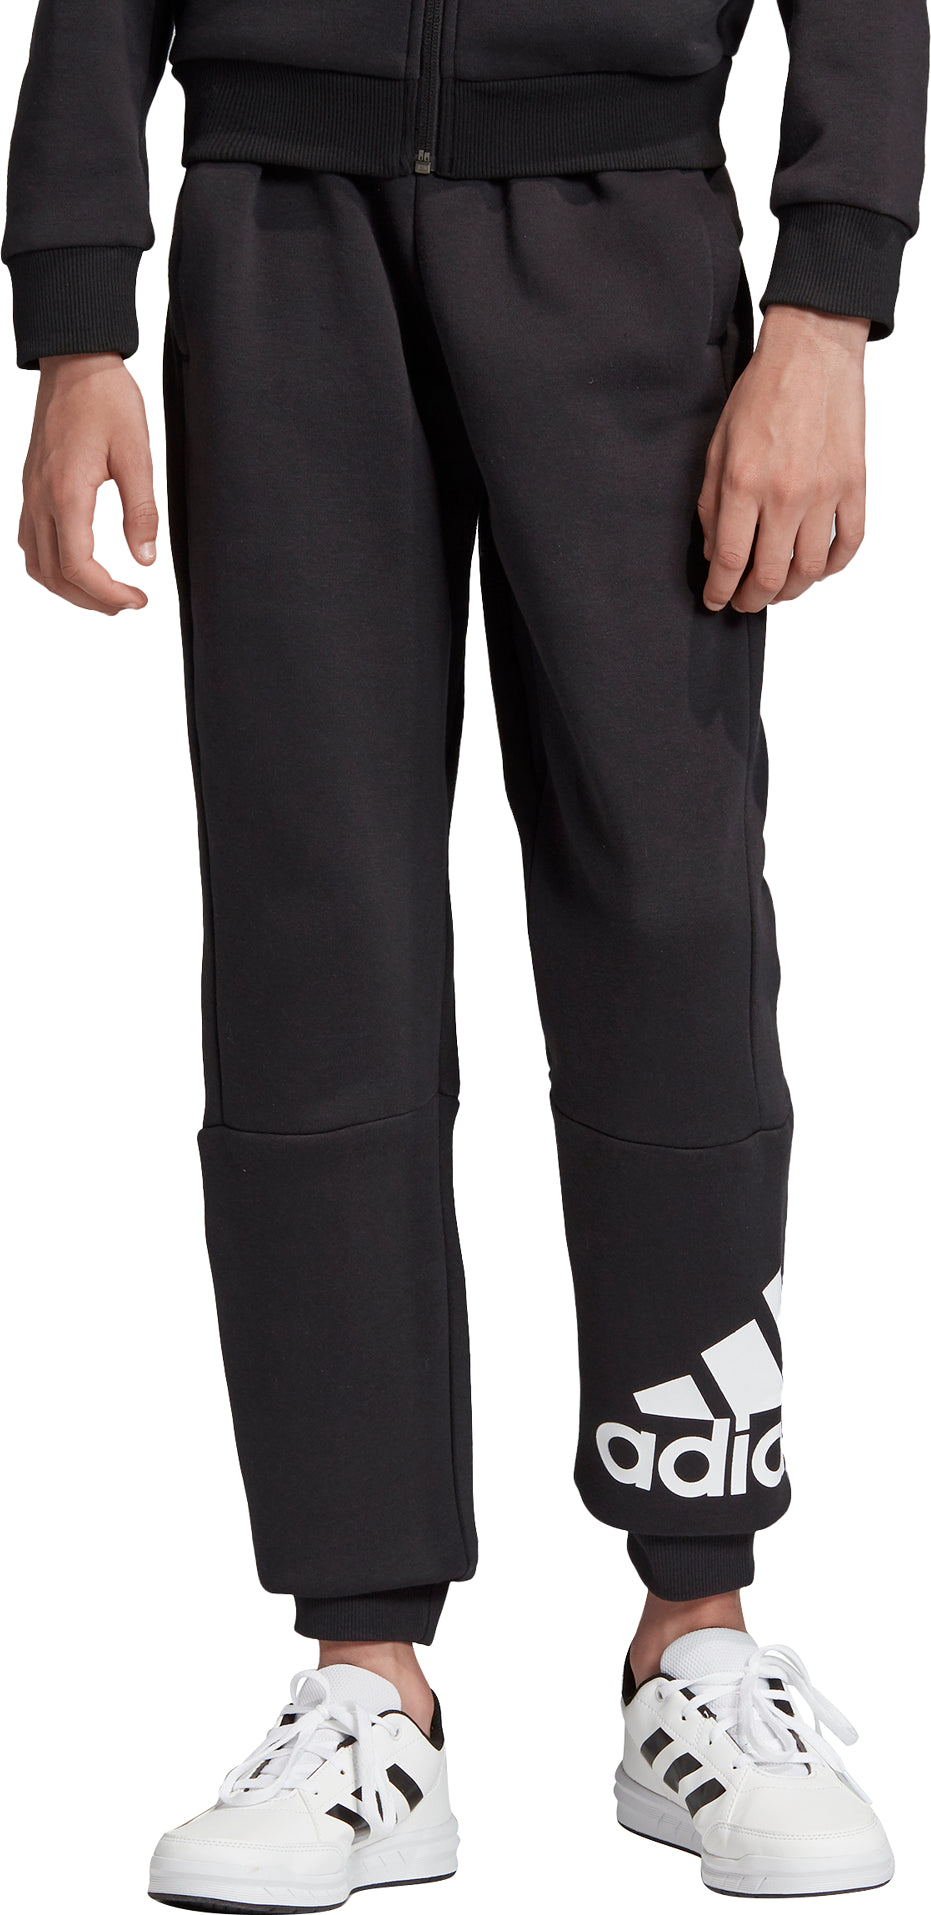 5f29915a00f Must Haves Badge of Sport Fleece Pants - Boy's